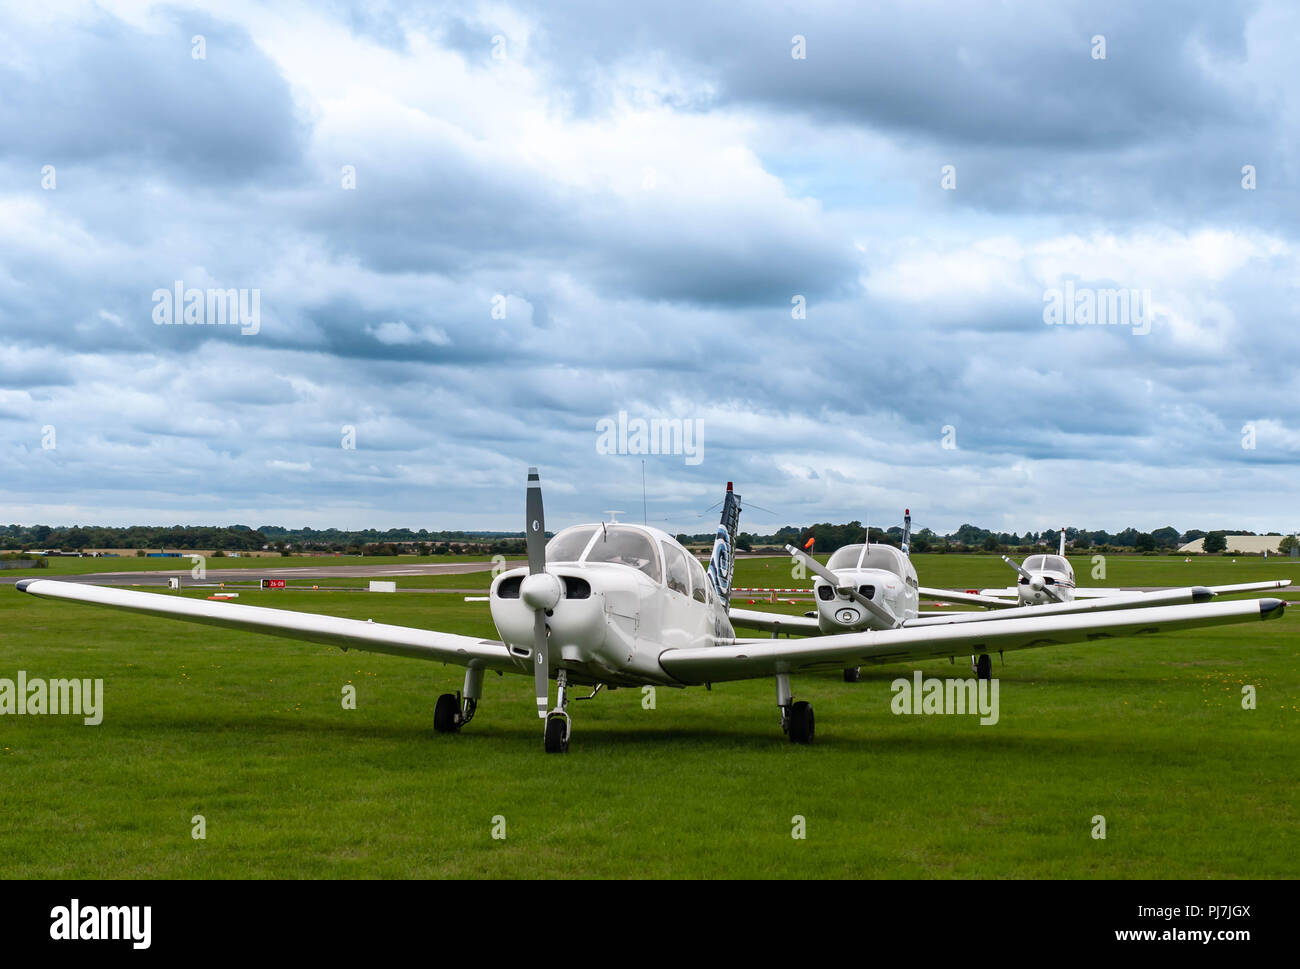 Three light aircraft in line - Stock Image